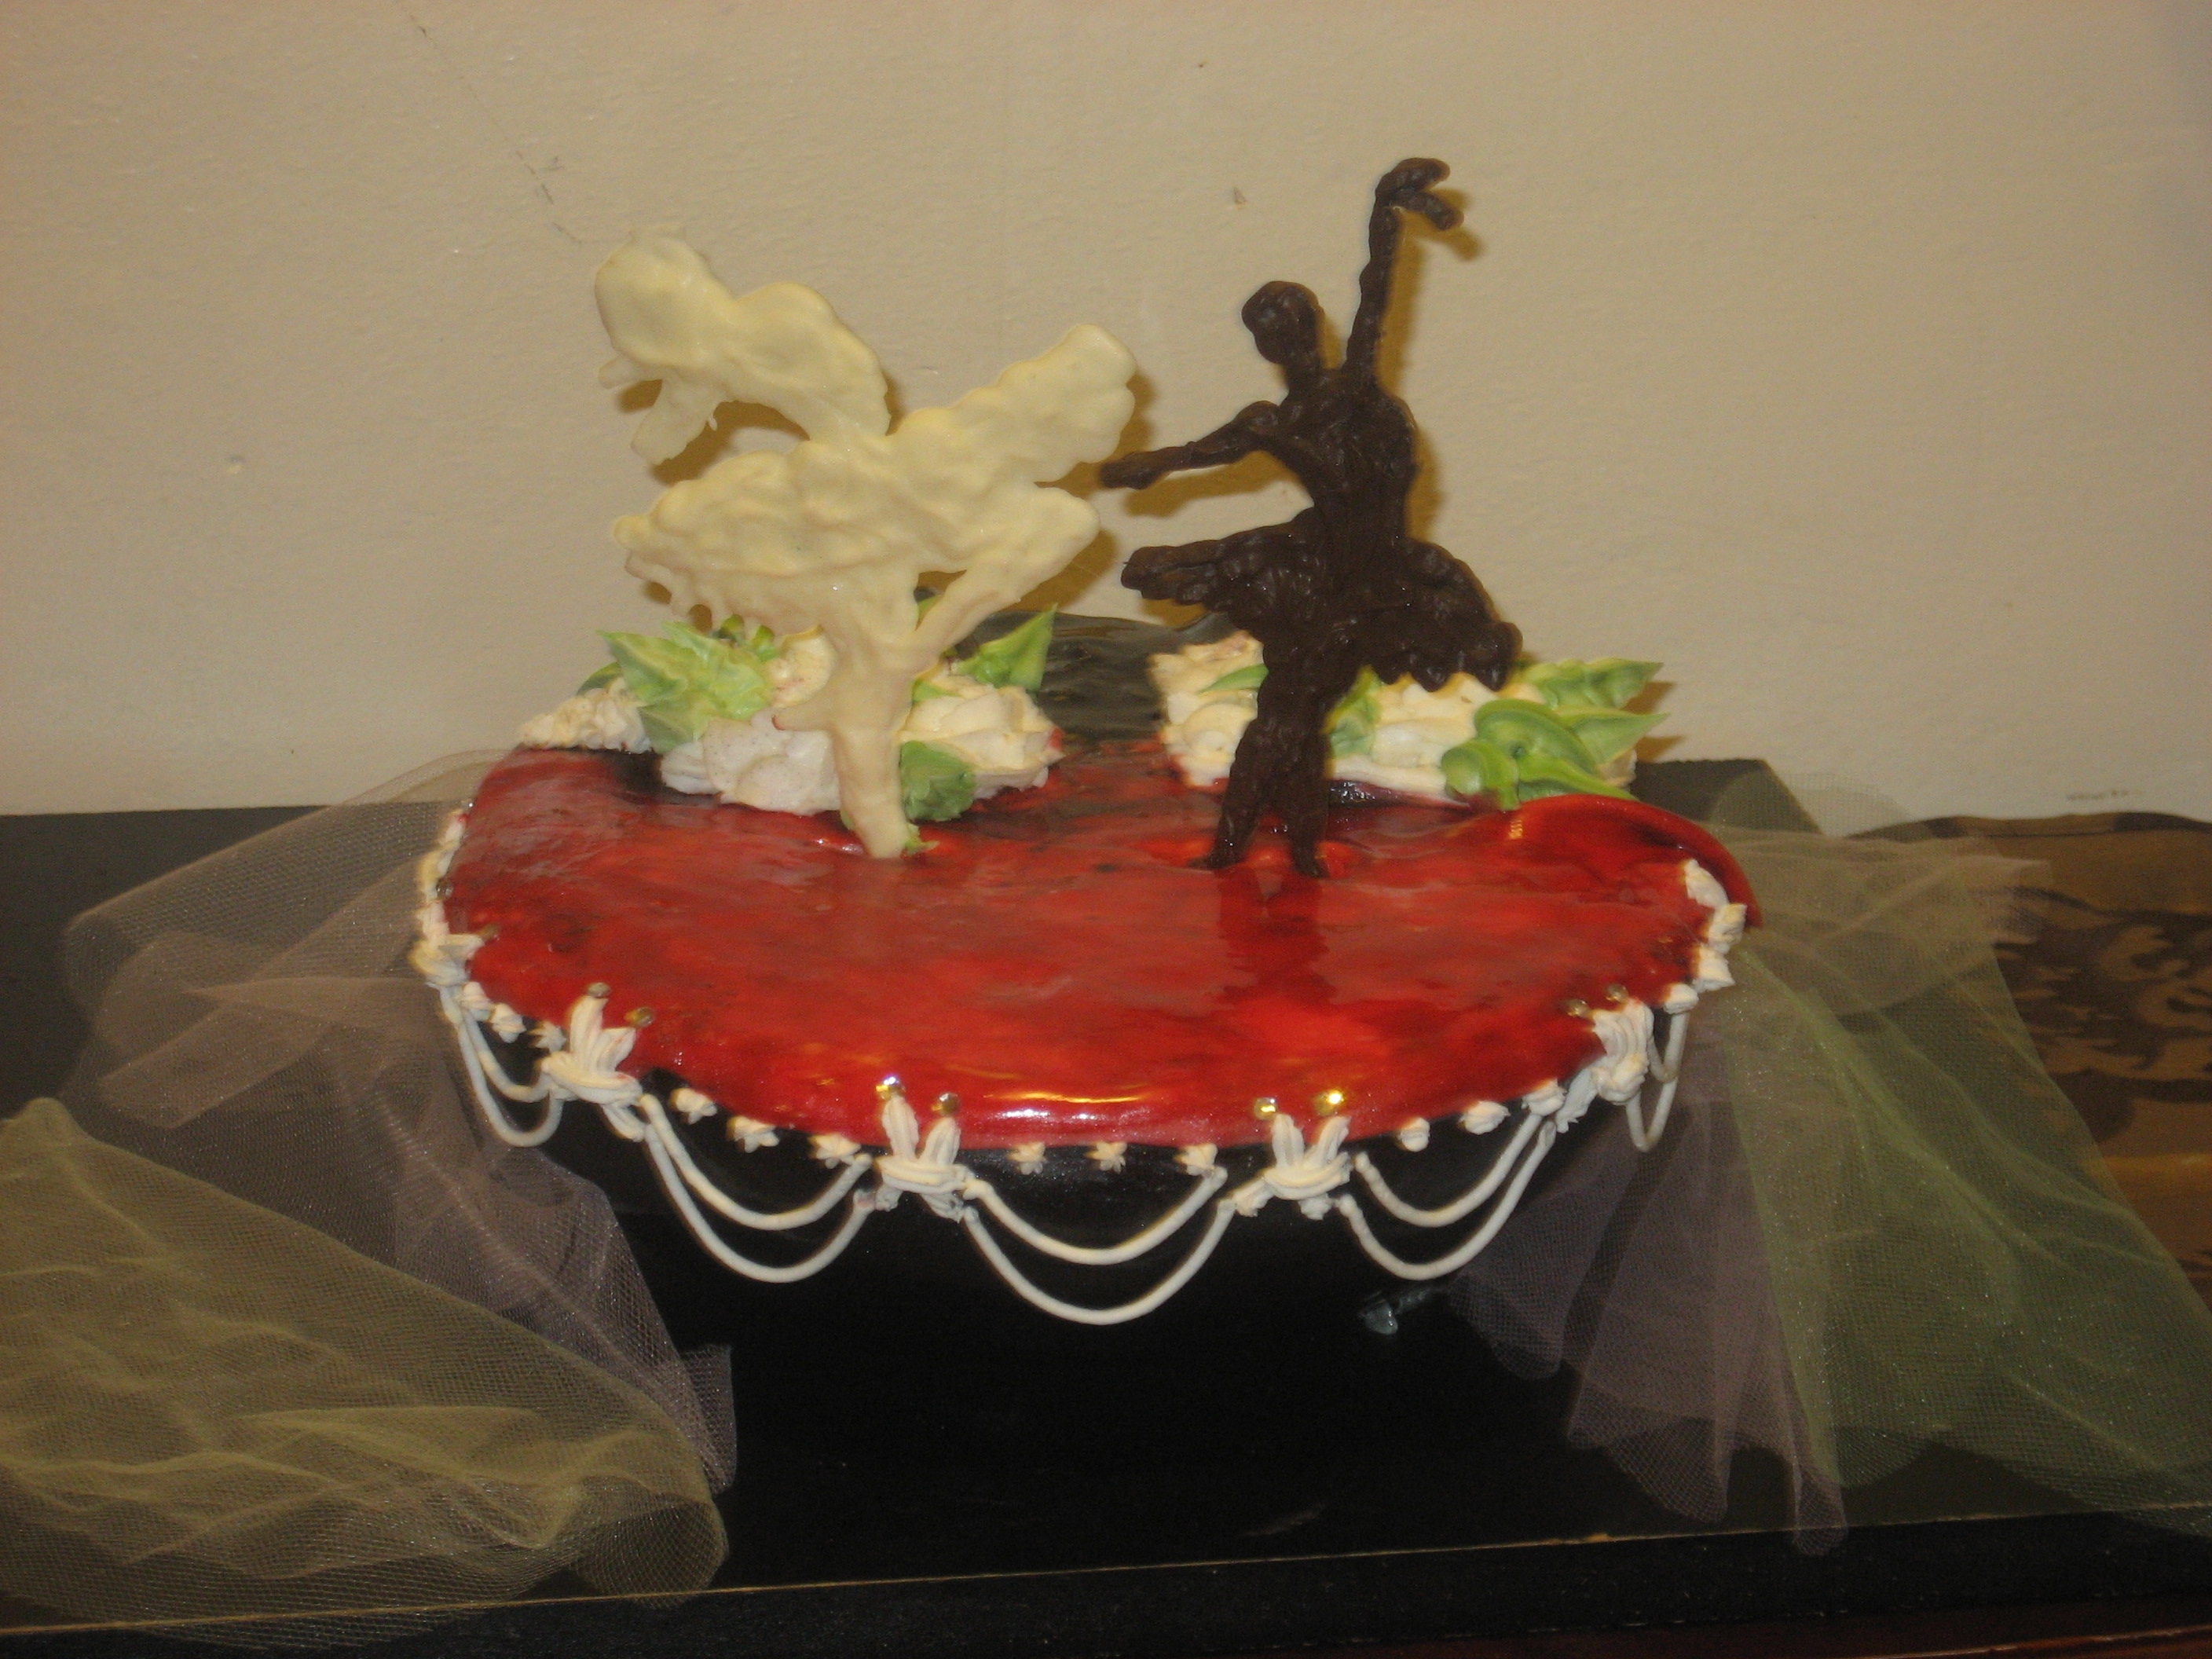 Dominican cake, with italian frosting, royal icing and Orance fondant, figures are made of chocolate